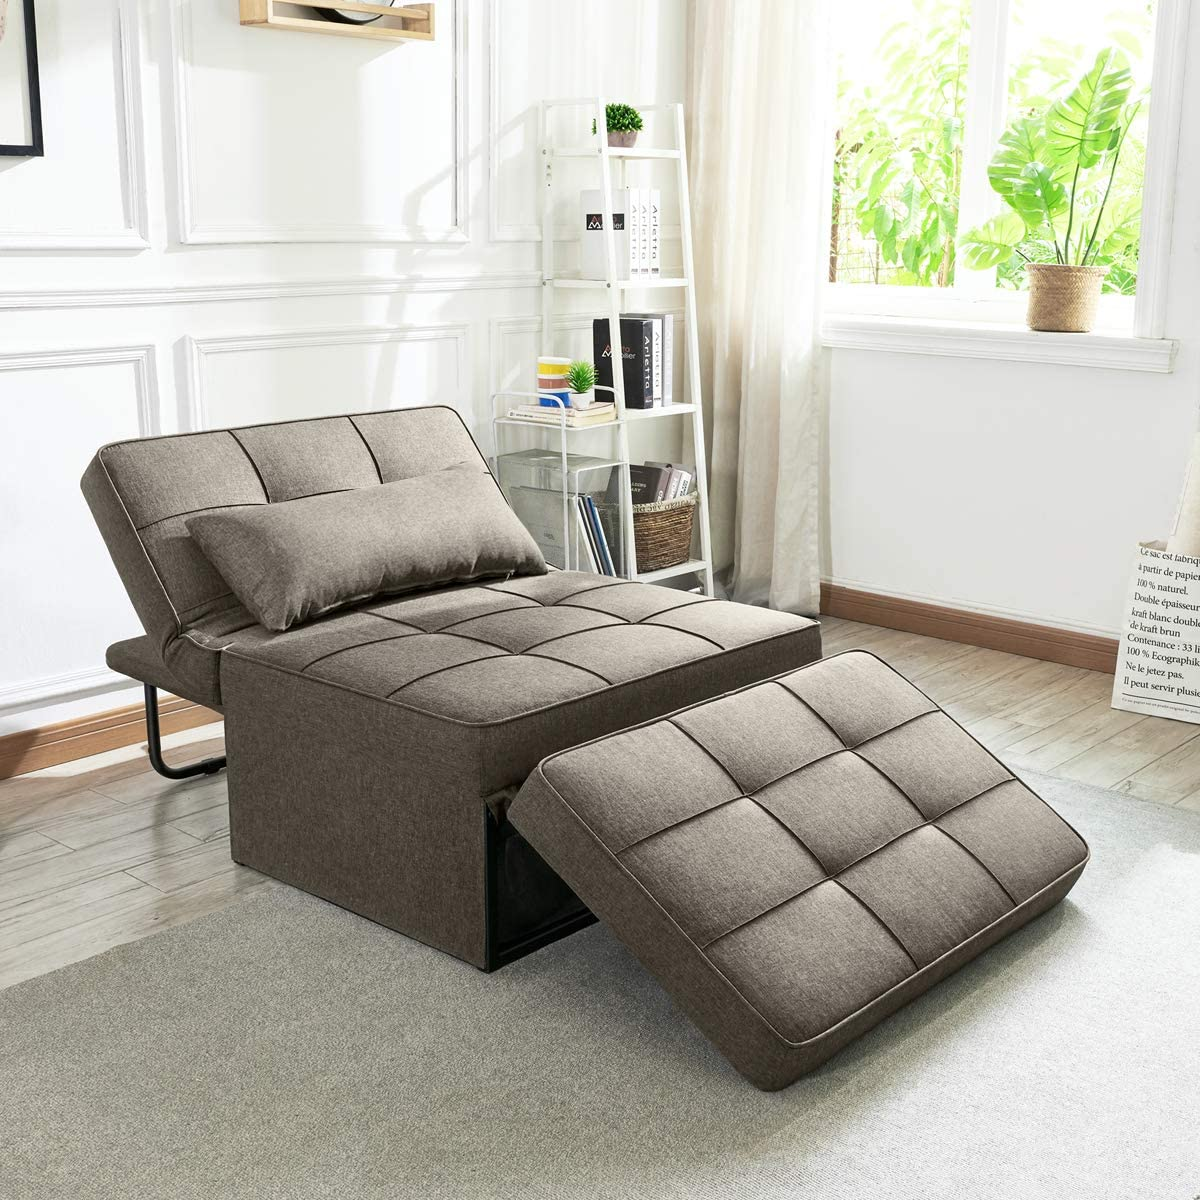 Vonanda Sofa Bed, Convertible Chair 4 in 1 Multi-Function Folding Ottoman Modern Breathable Linen Guest Bed with Adjustable Sleeper for Small Room Apartment,Light Brown